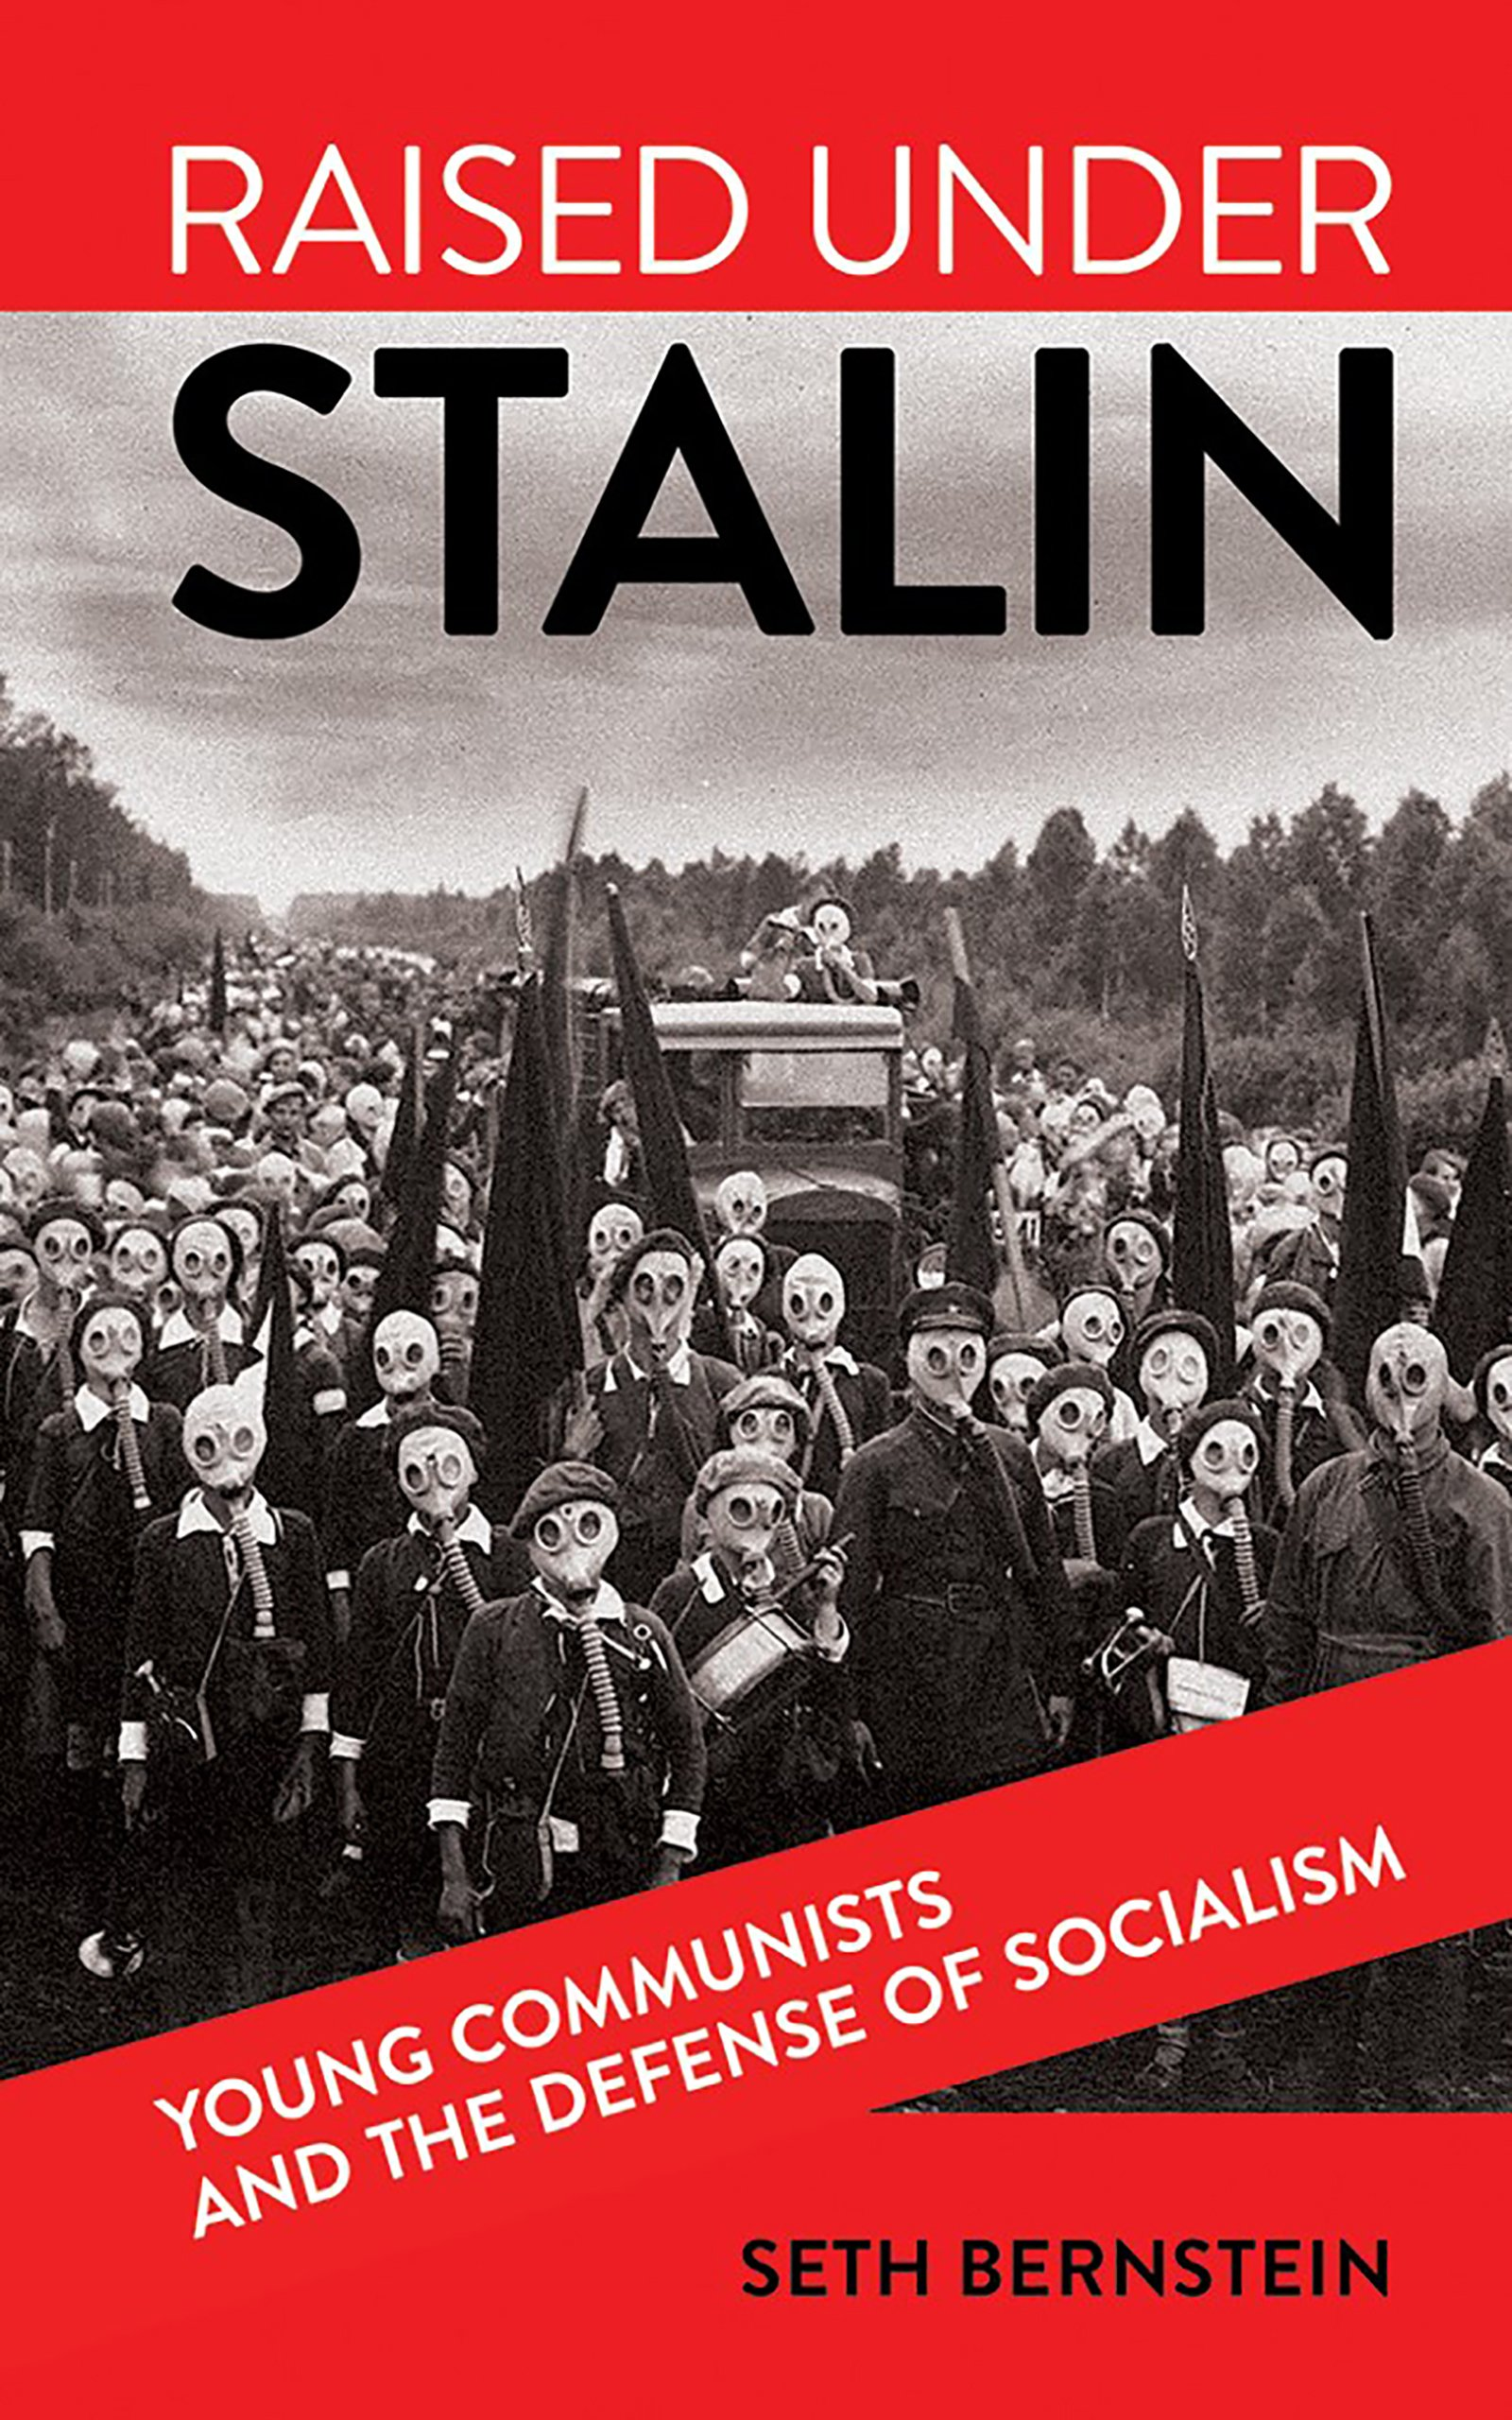 Raised Under Stalin: Young Communists and the Defense of